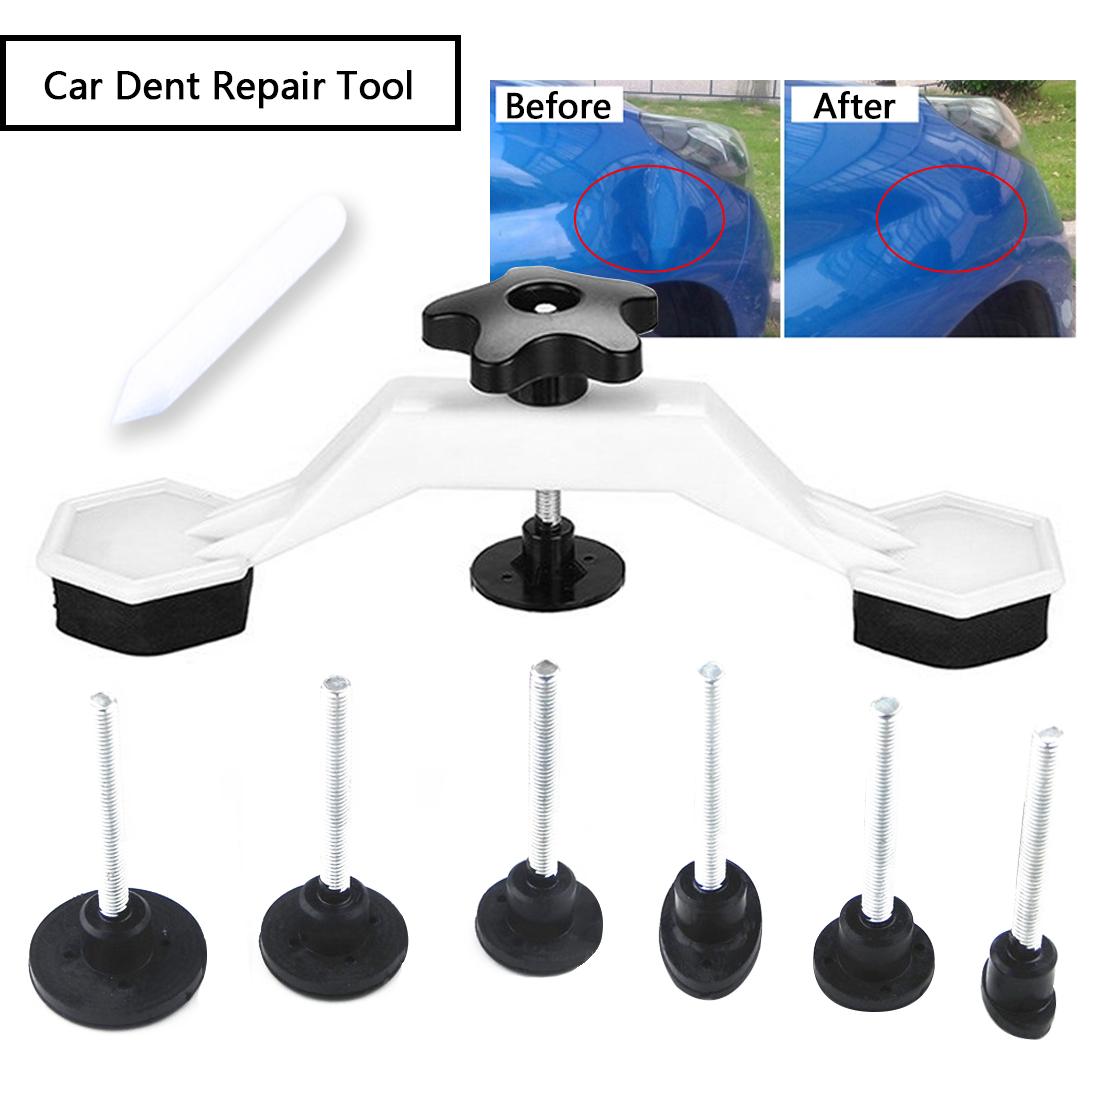 Fix Dent Repair Tool Kit 8pcs Instrument Paintless Auto Car Body Damage Pulling Bridge Removal Glue Tab Tool Hand Tool Set NewlyFix Dent Repair Tool Kit 8pcs Instrument Paintless Auto Car Body Damage Pulling Bridge Removal Glue Tab Tool Hand Tool Set Newly